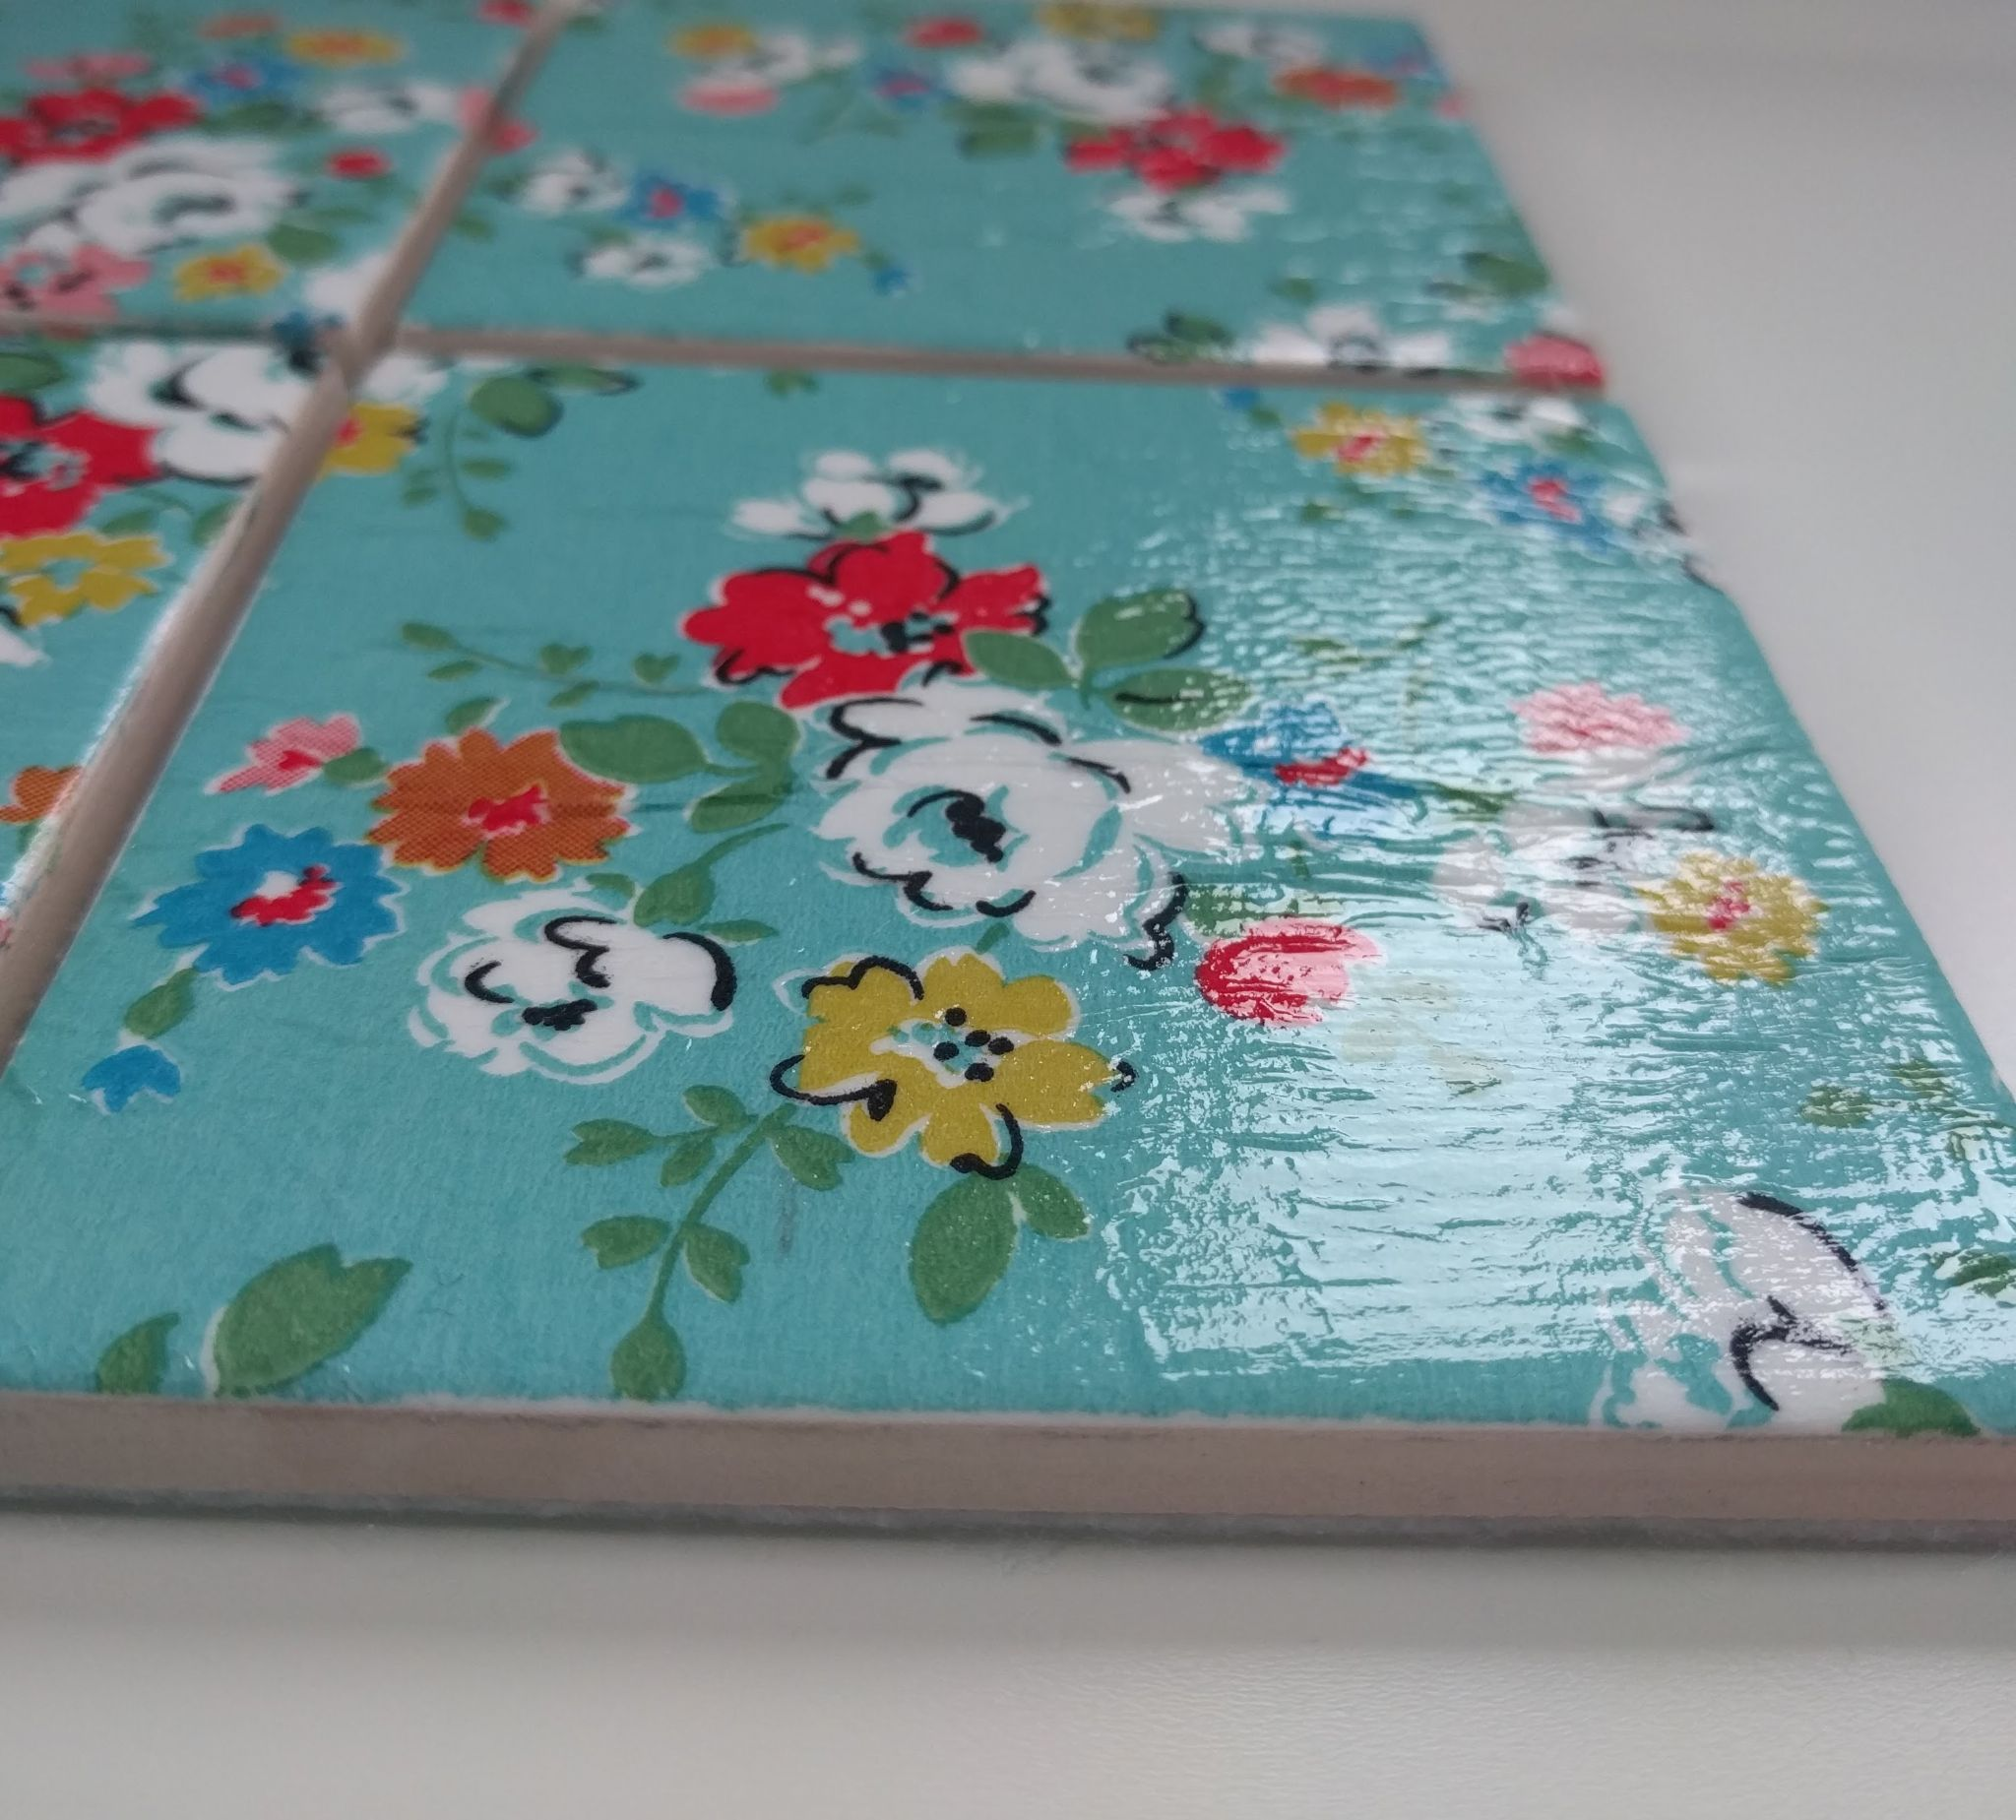 Ceramic coasters in cath kidston clifton rose blue 4 ceramic coasters in cath kidston clifton rose blue doublecrazyfo Images